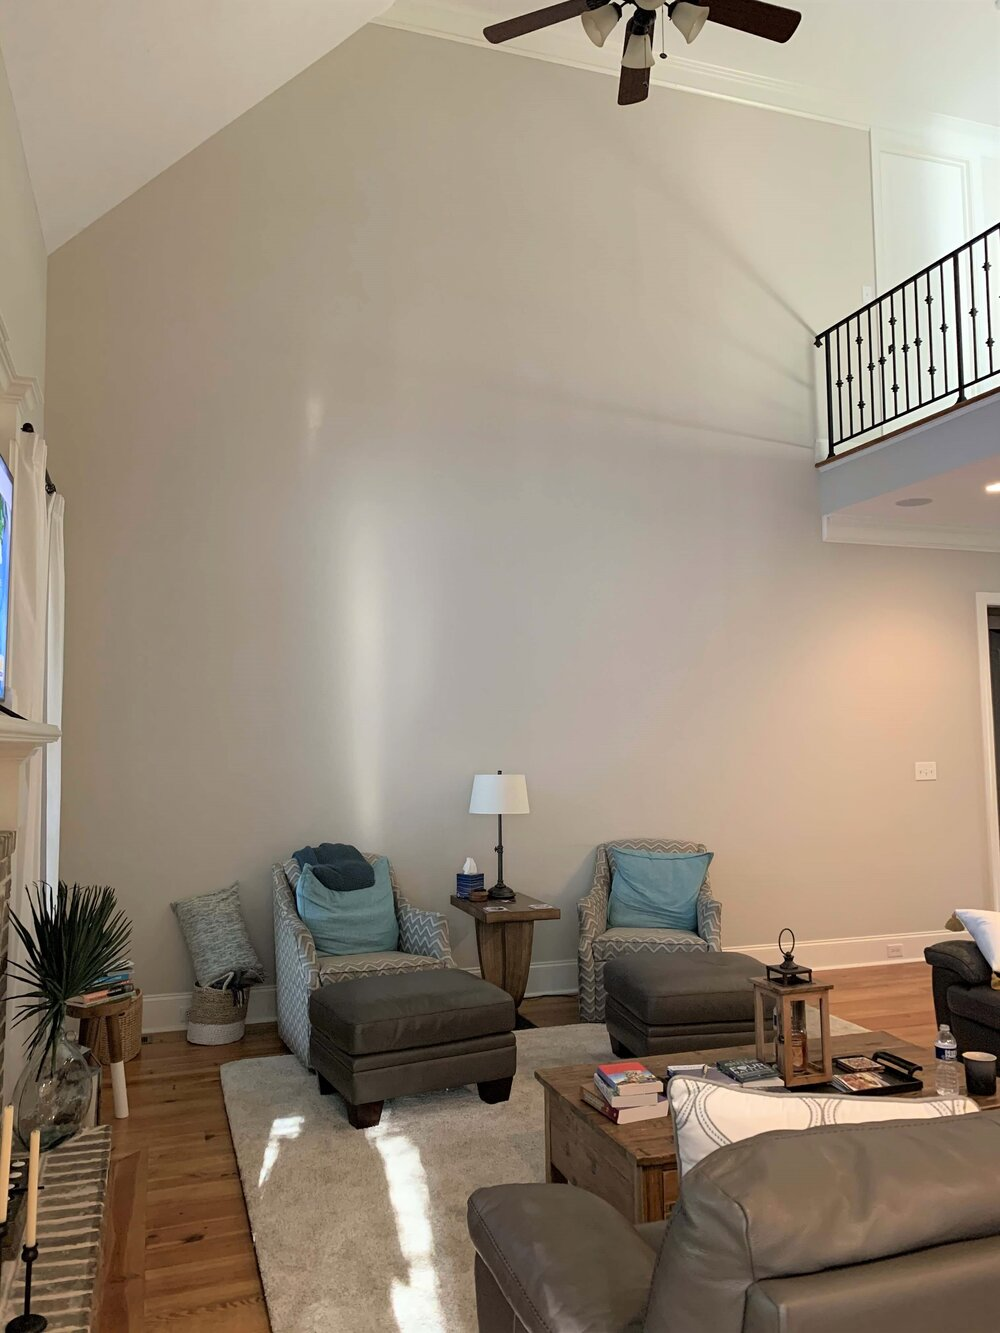 How do you decorate this two story high empty wall in a big living room space?